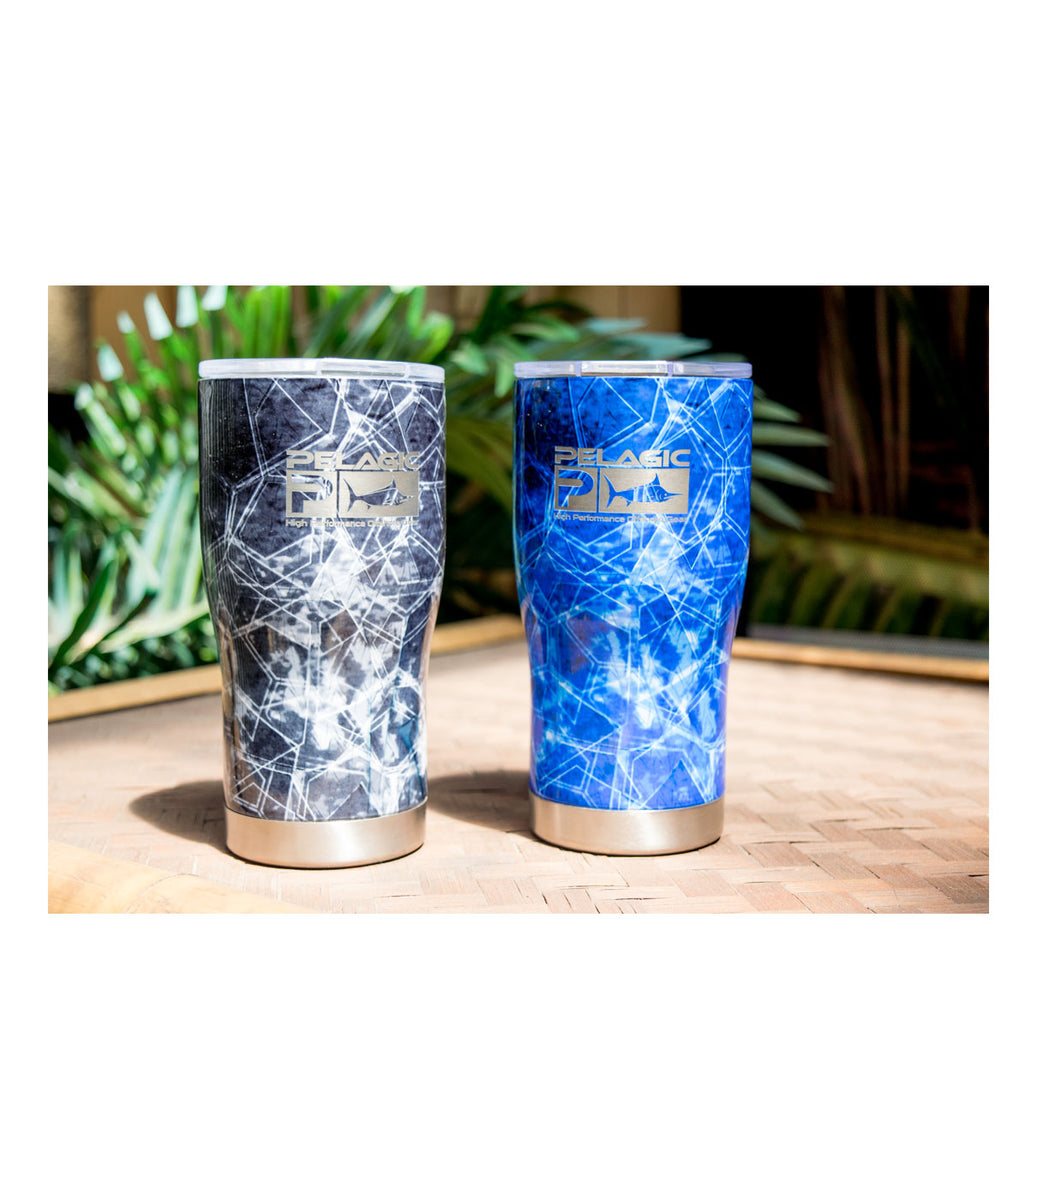 20 OZ. Insulated Tumbler Big Image - 3